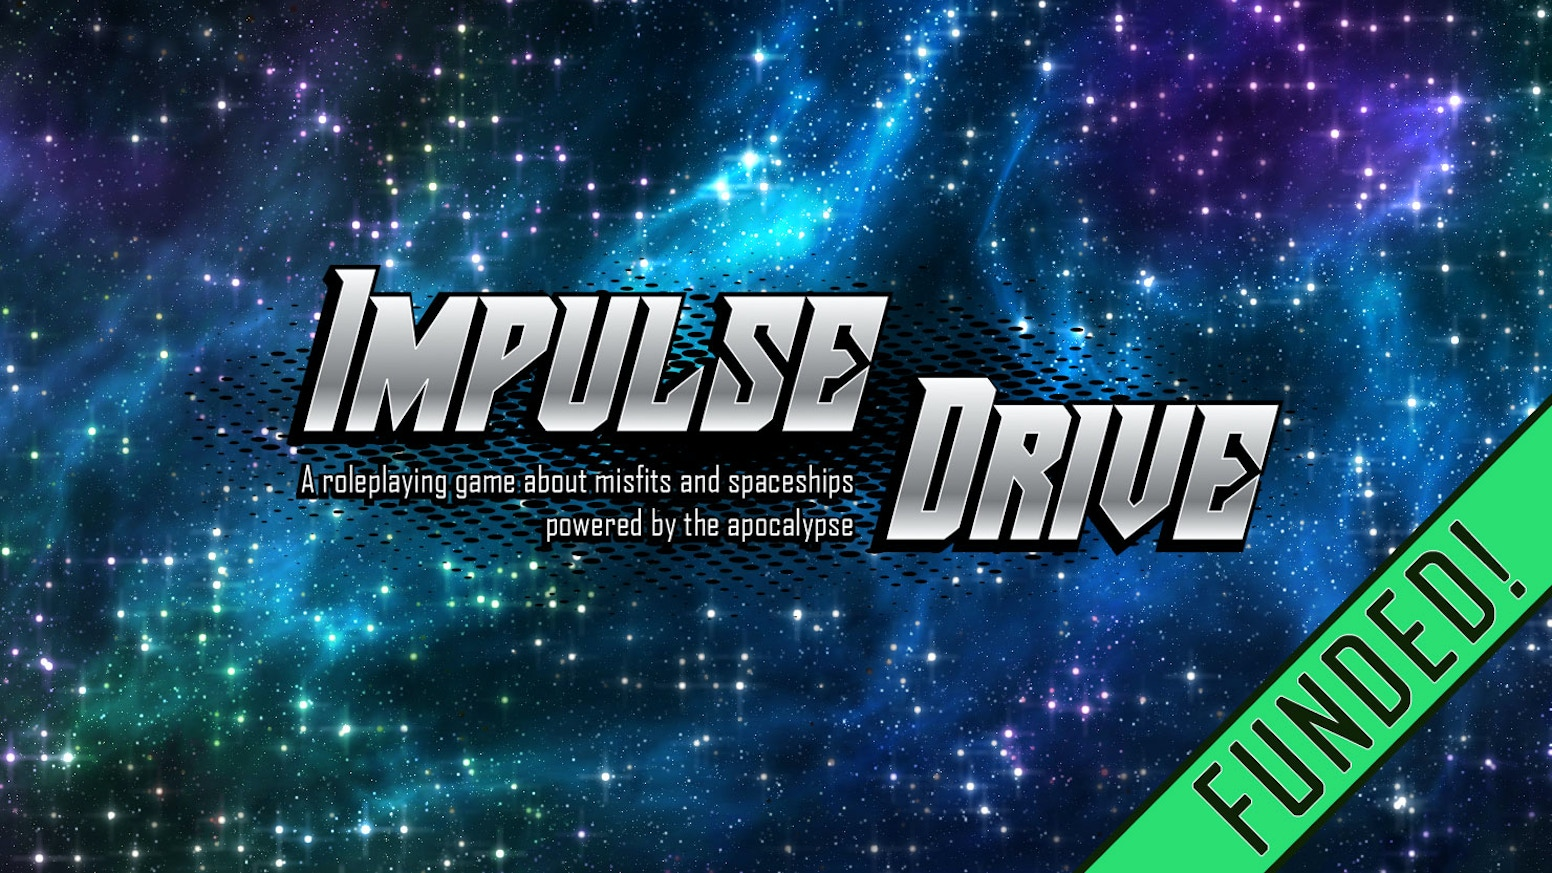 Impulse Drive: a Space Opera RPG of Misfits and Spaceships